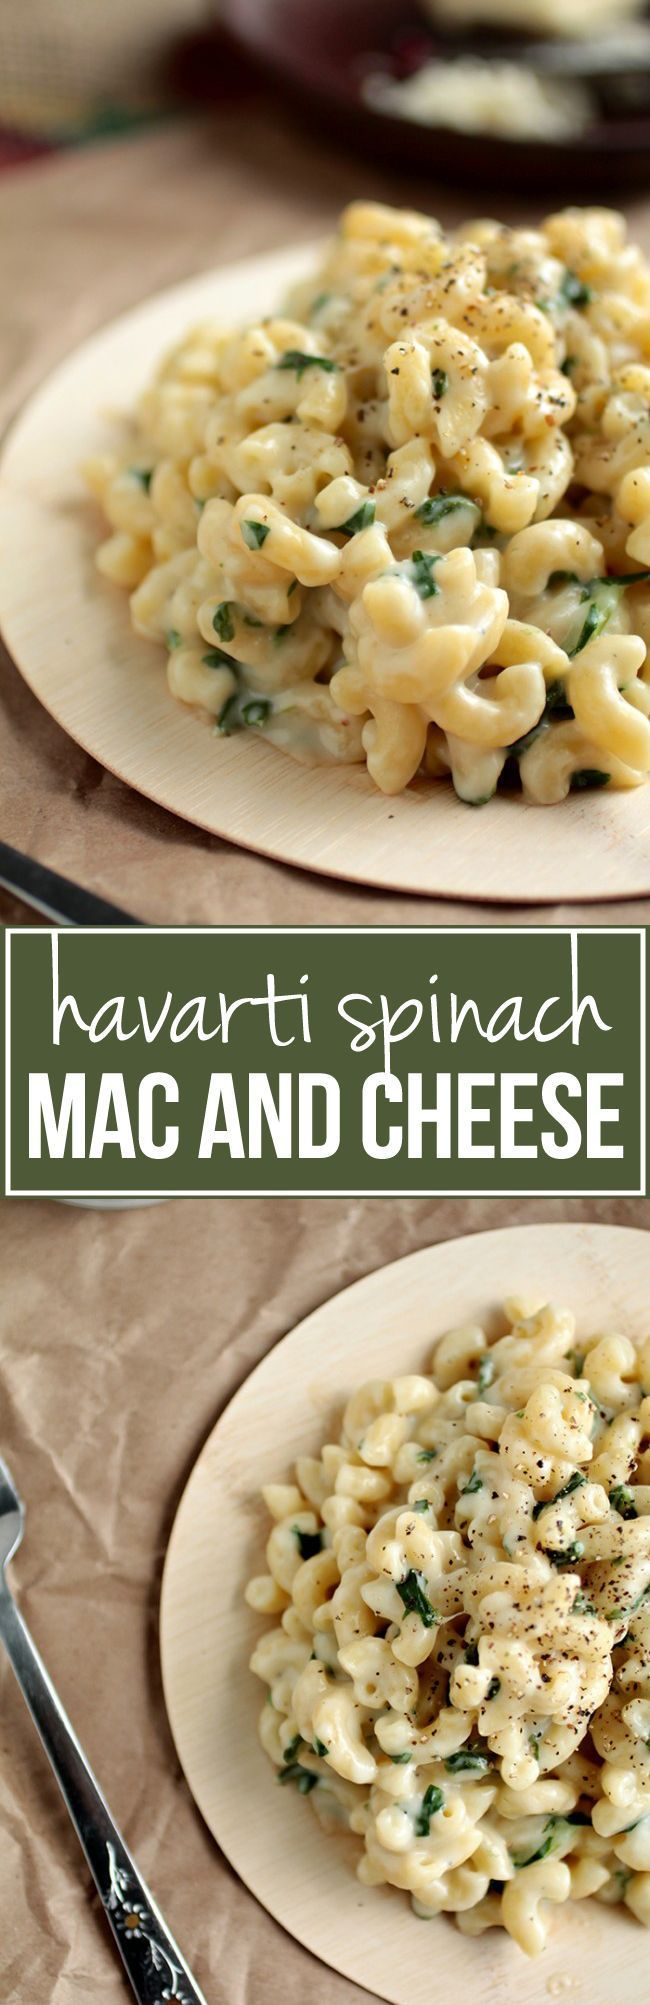 Havarti Spinach Mac and Cheese | One of my FAVORITE mac and cheese recipes! Havarti cheese makes this mac and cheese almost impossibly creamy, and fresh spinach lends a delicious fresh flavor. Ready in just 30 minutes, and vegetarian!